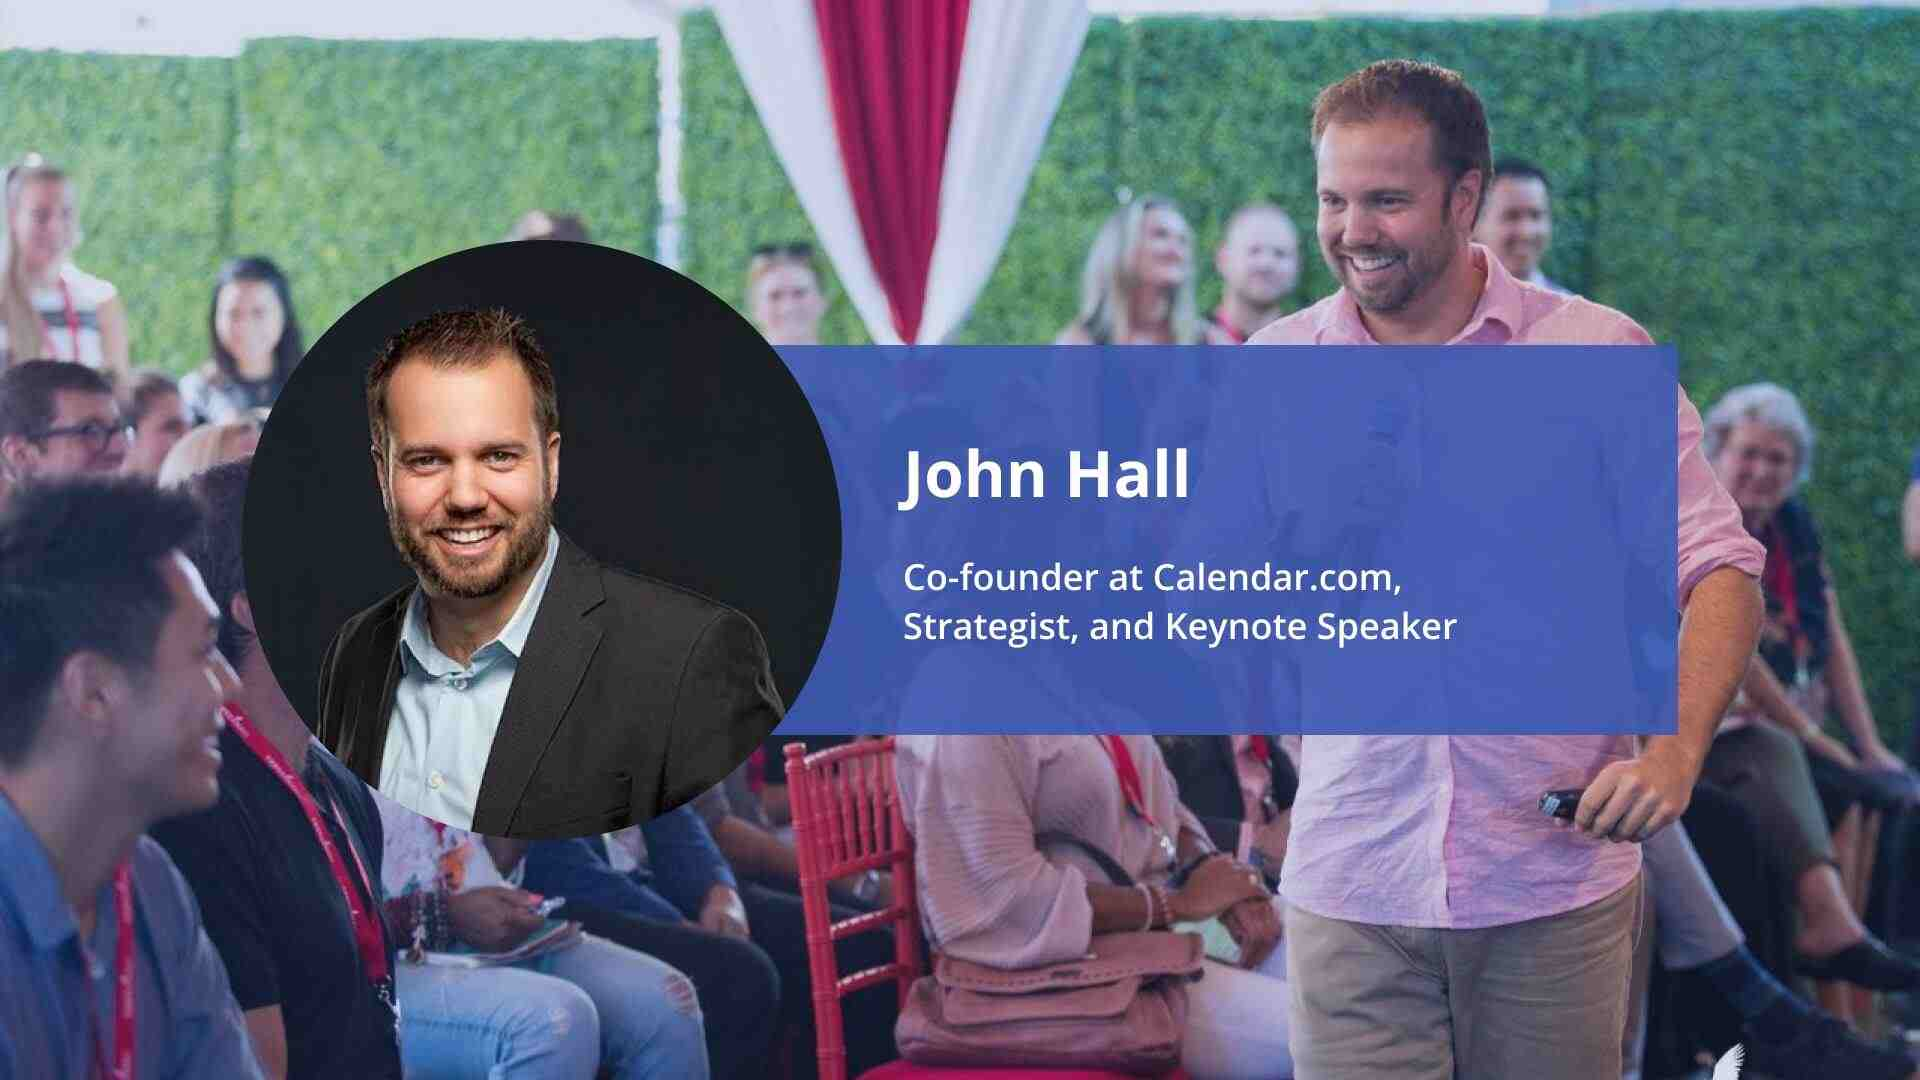 Blue Ocean Global Technology interviews John Hall, Chief Executive Officer of Influence & Co.